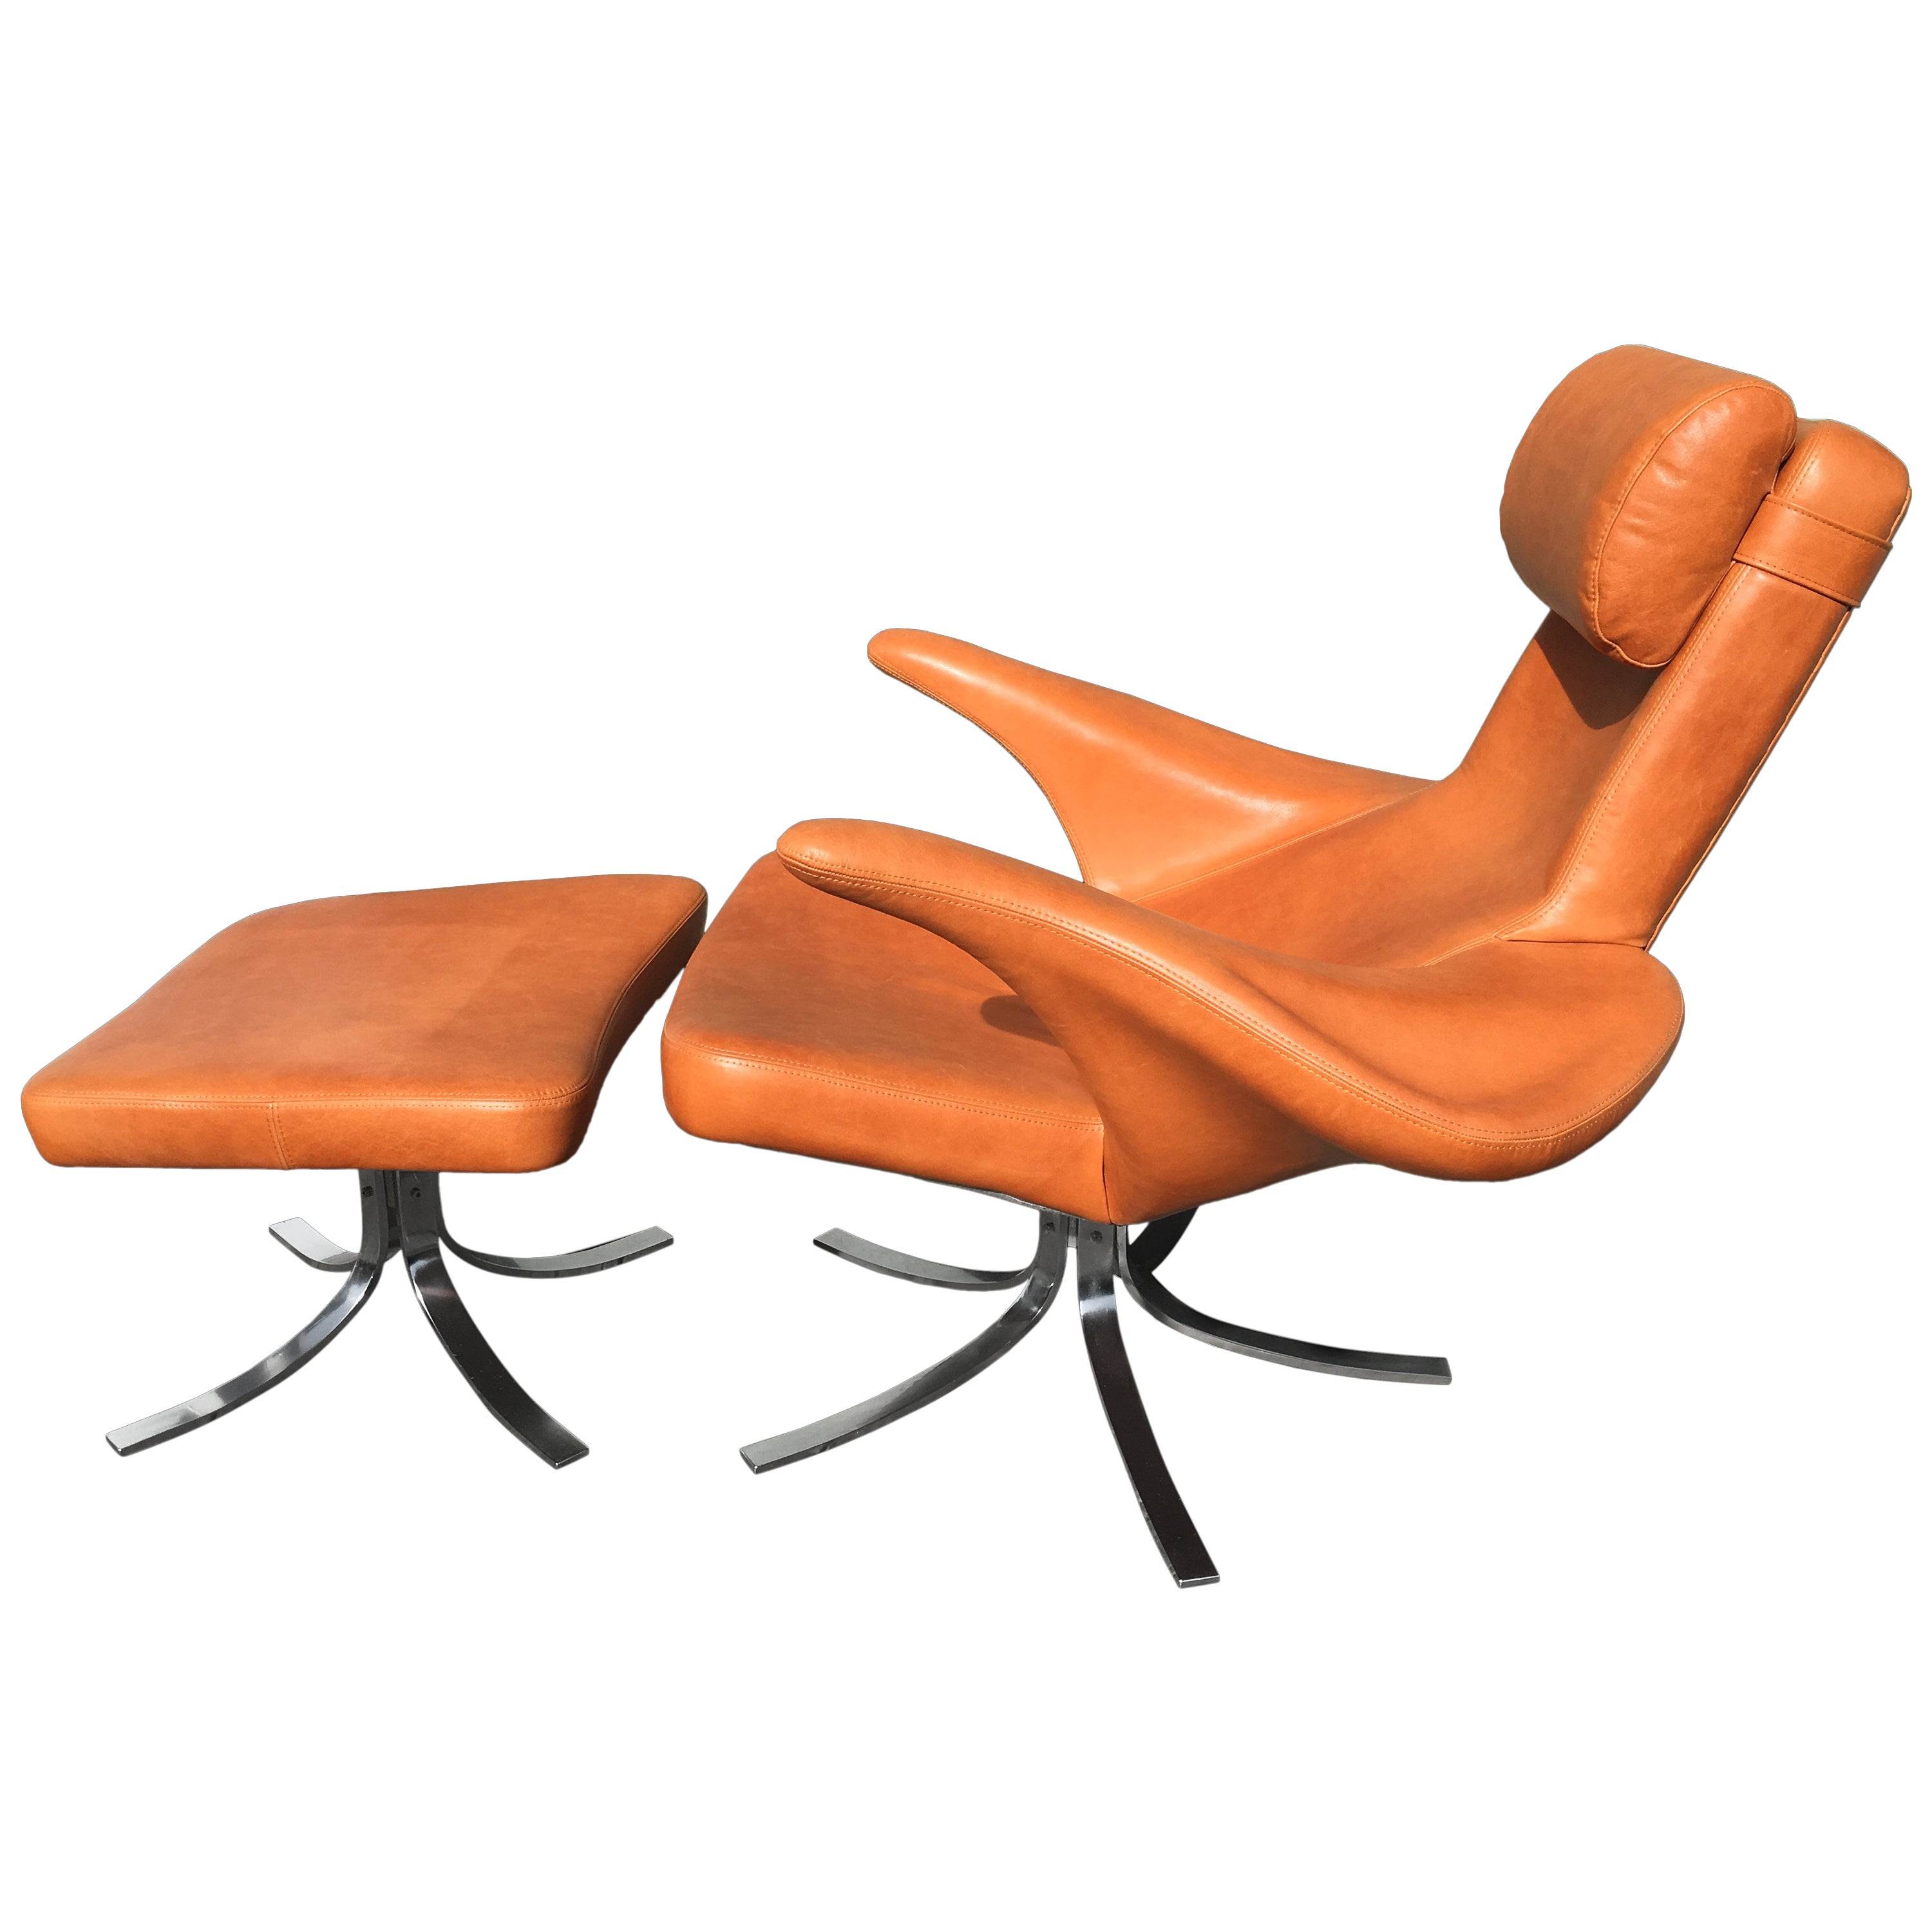 Wondrous Cognac Leather Seagull Chair And Ottoman By Gosta Berg And Stenerik Eriksson Gmtry Best Dining Table And Chair Ideas Images Gmtryco